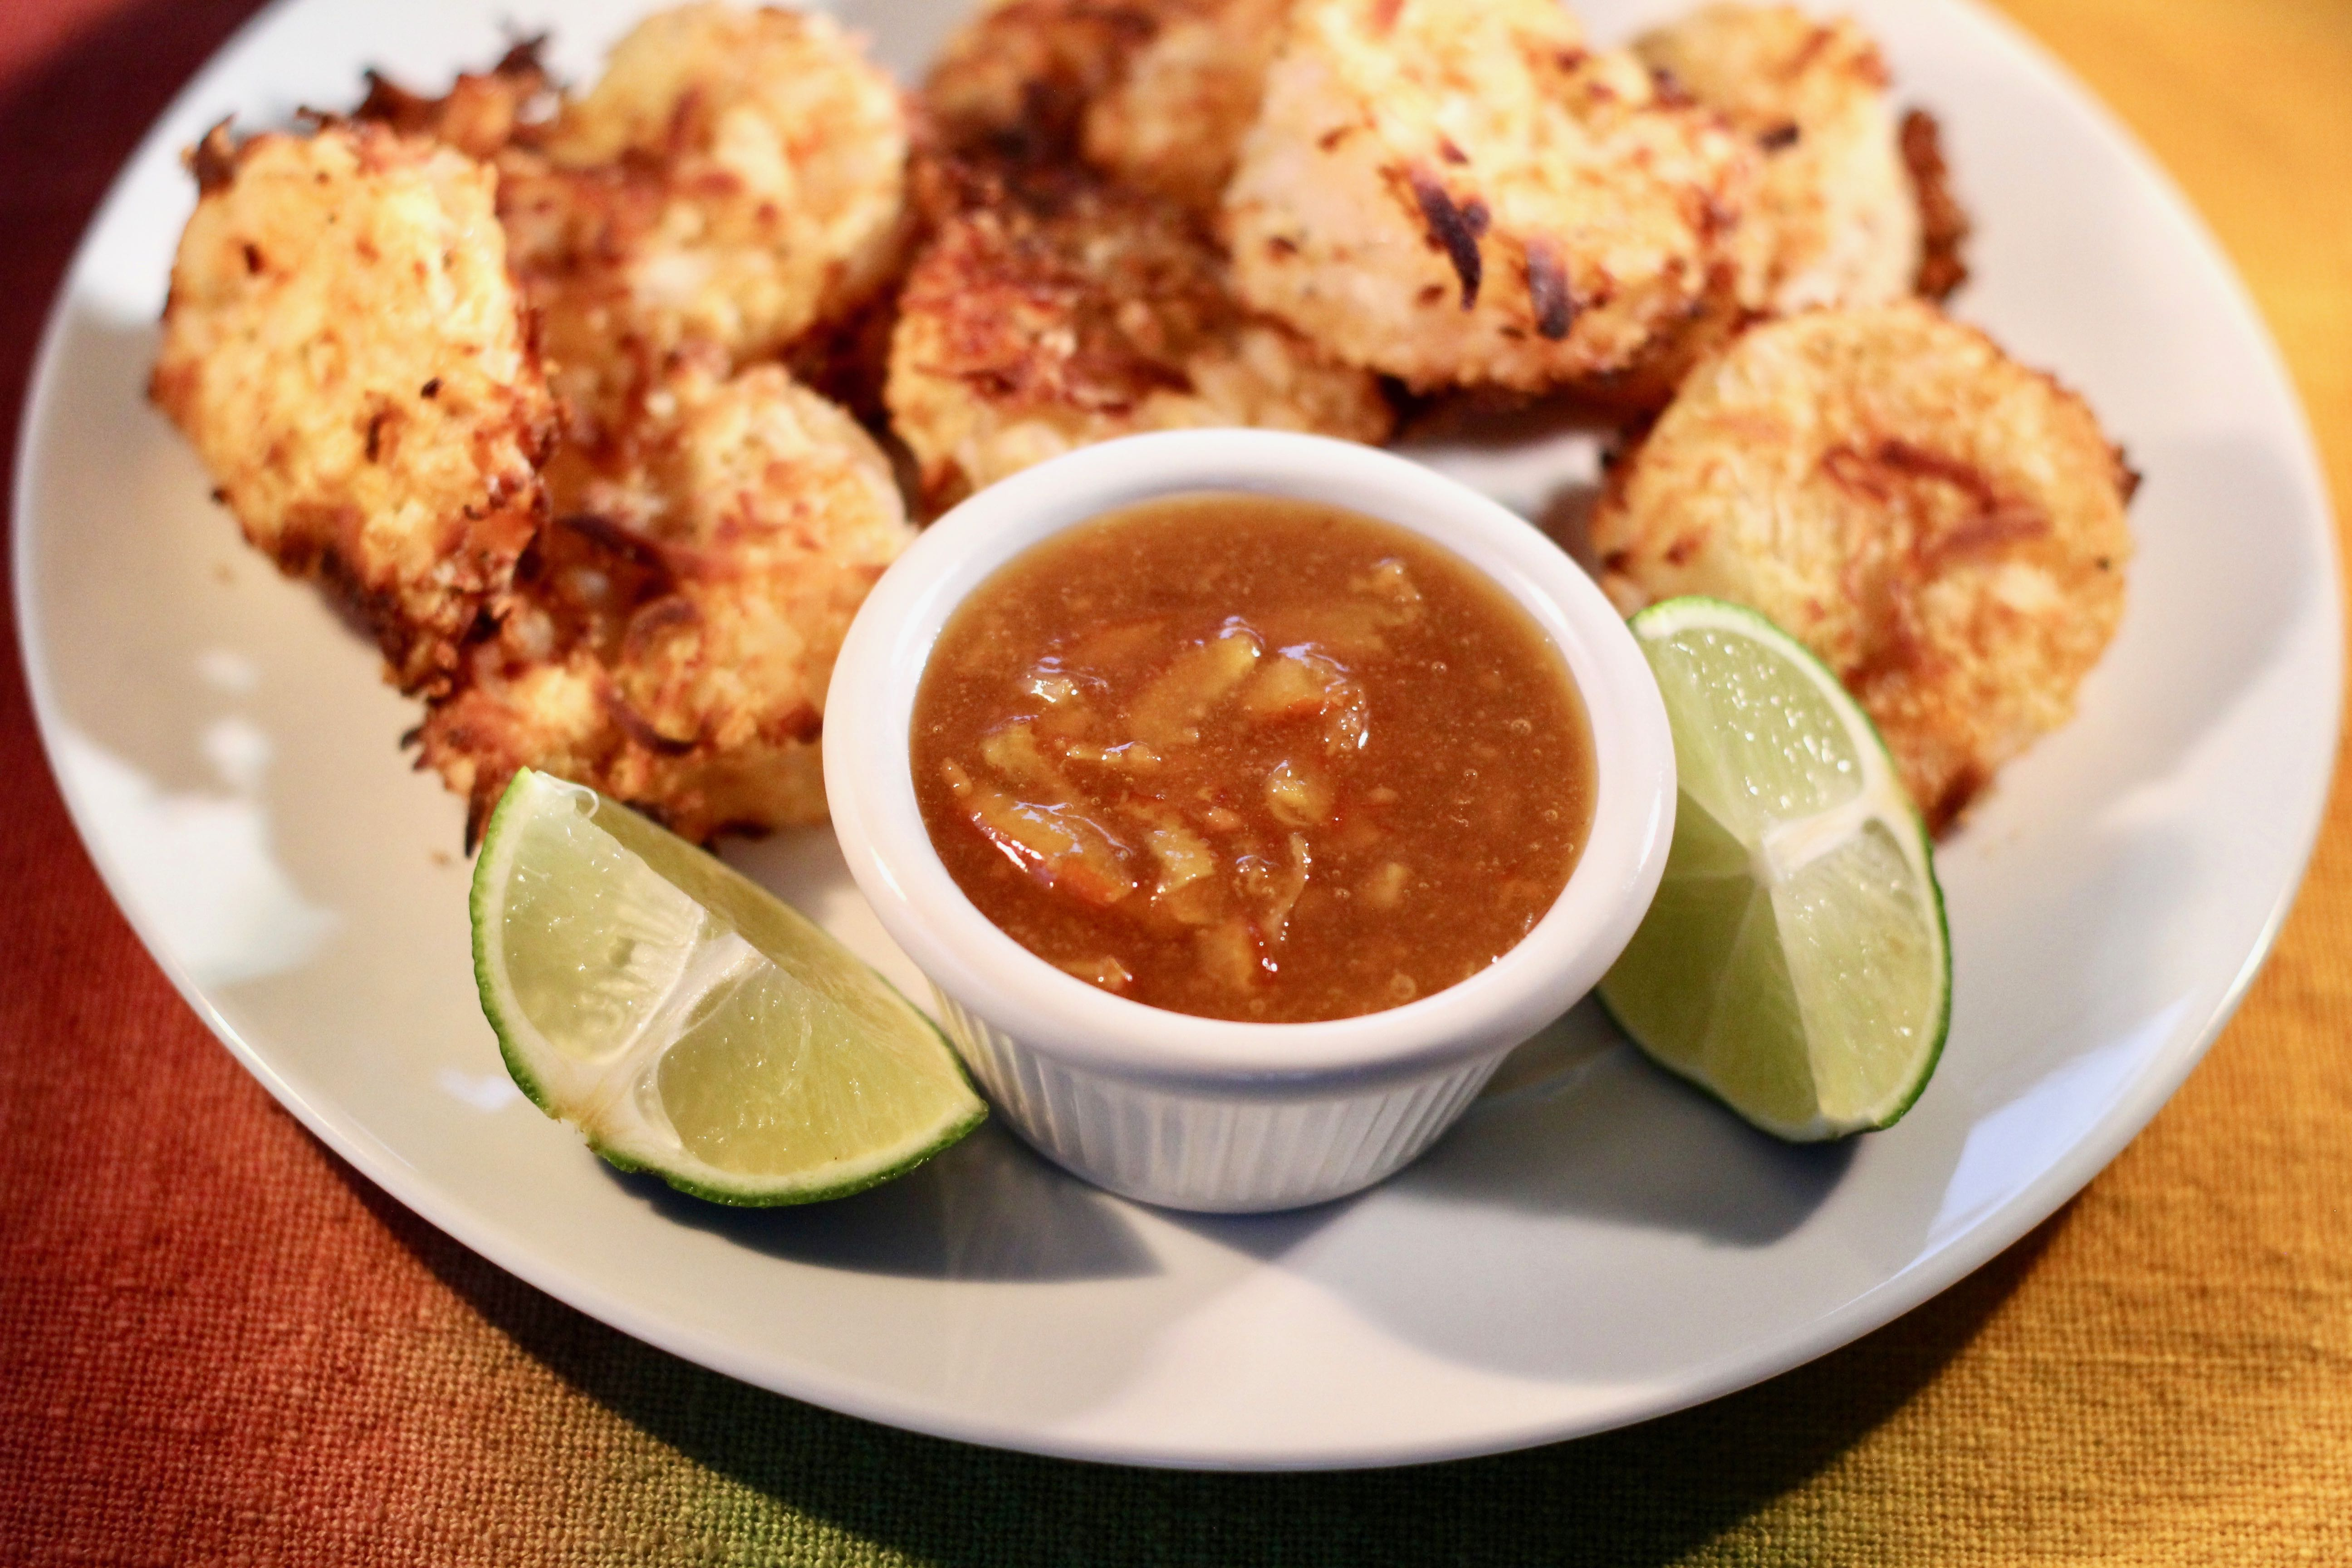 """This sauce is an intriguing combination of orange marmalade, soy sauce, dry mustard, and rum for Caribbean flair. """"Flavorful, quick, and easy to make with ingredients I always have on hand,"""" says recipe reviewer Lutzflcat. Store the sauce in the refrigerator and use it for marinating, basting, or dipping. It's especially good on shrimp, ribs, or chicken."""